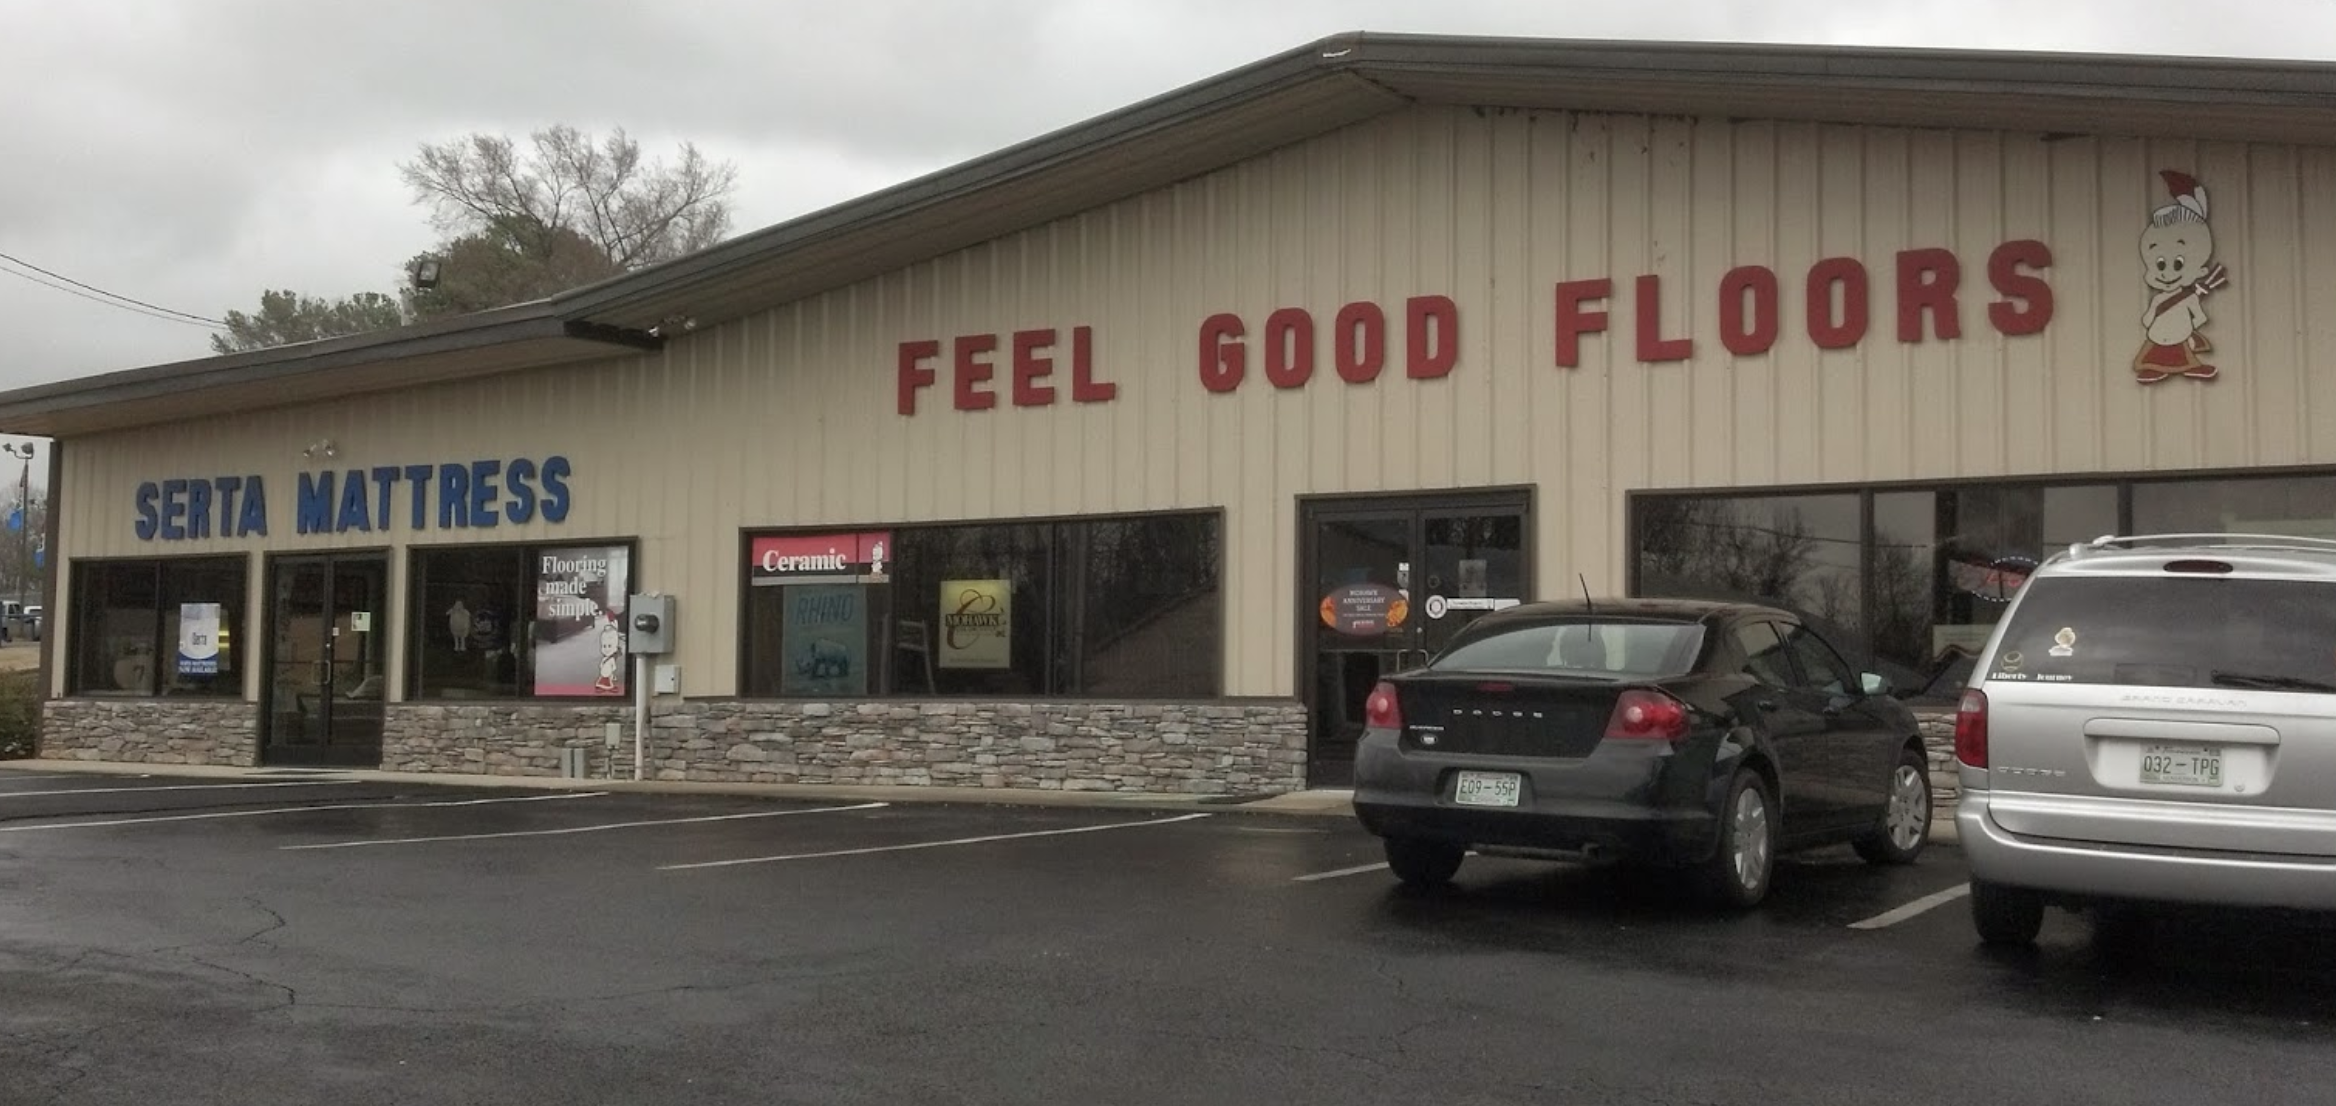 Feel Good Floors - 527 S Broad St, Lexington, TN 38351